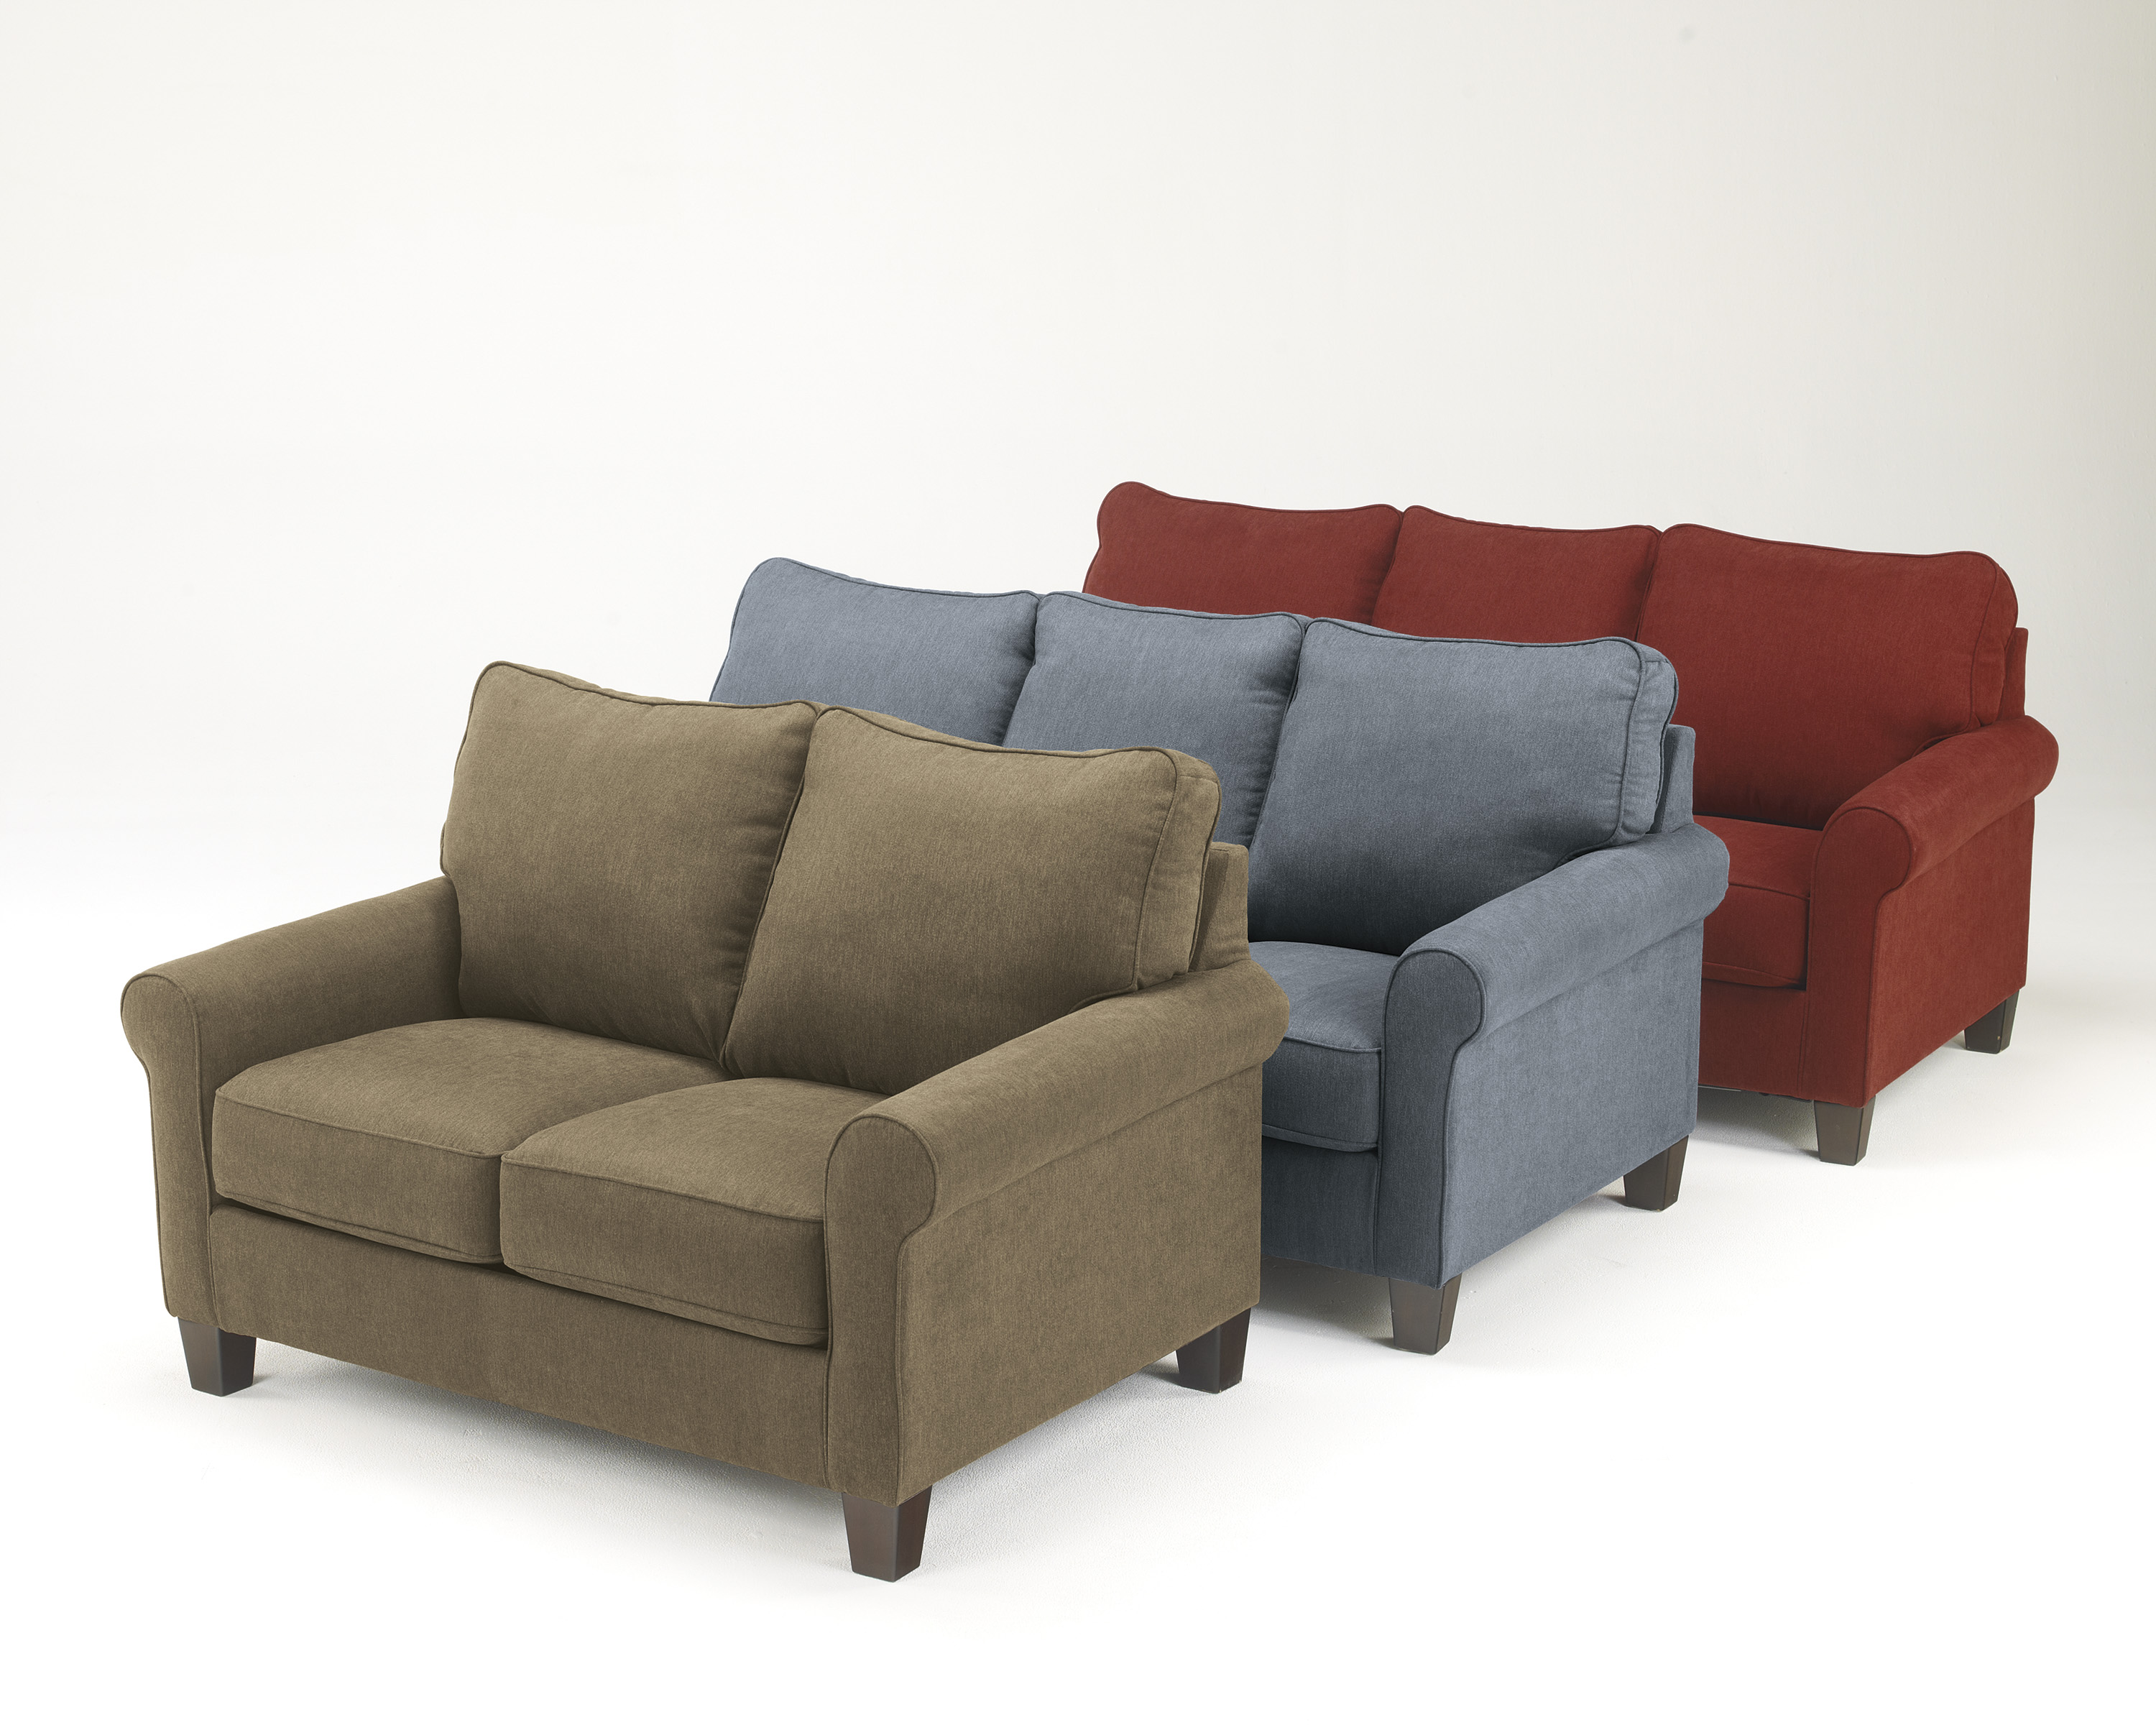 Lindsey's Suite Deals Furniture fers New Deals for Tax